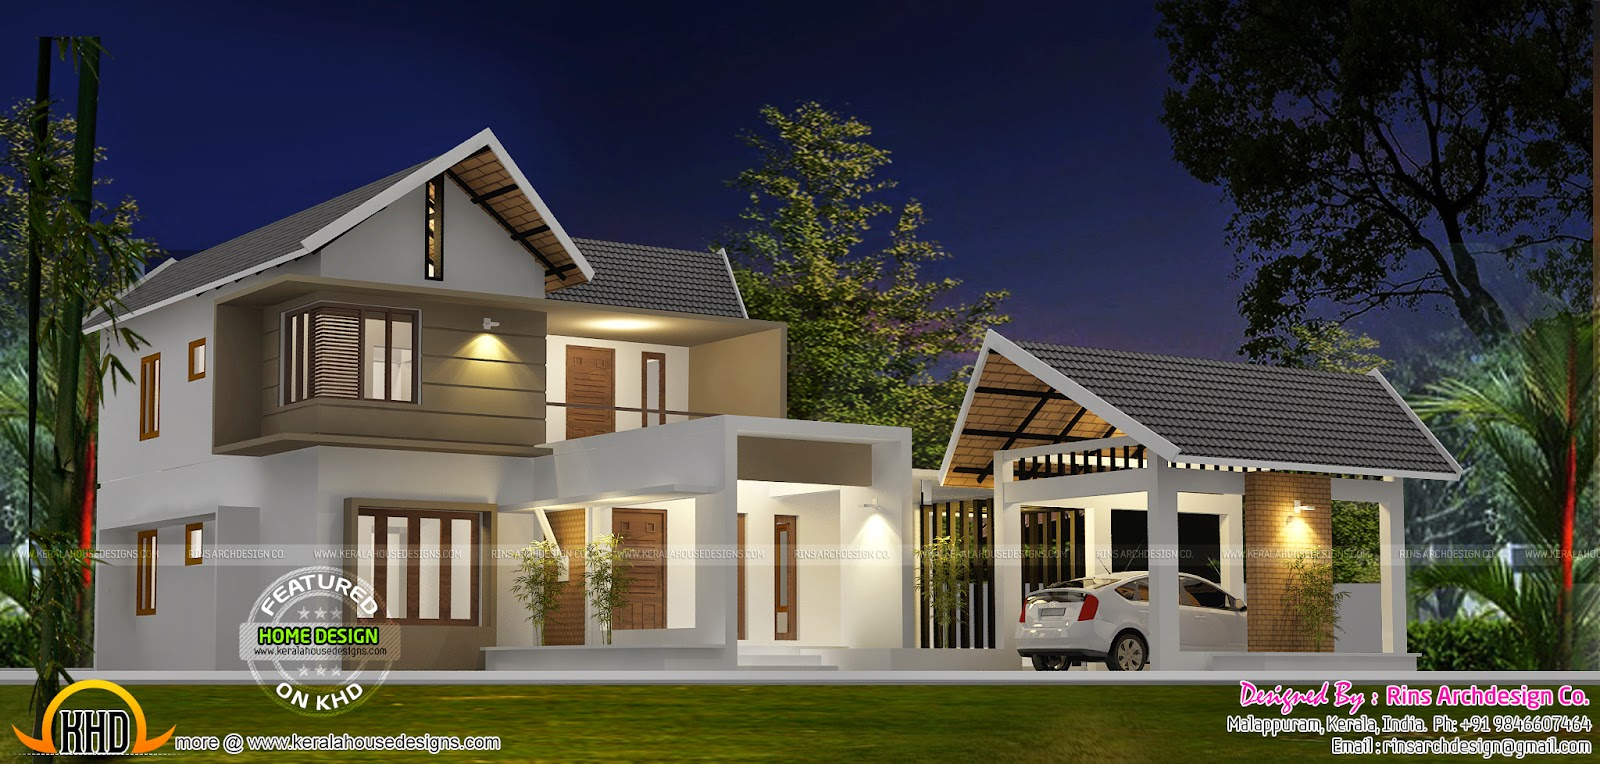 separate garage house plan kerala home design and floor